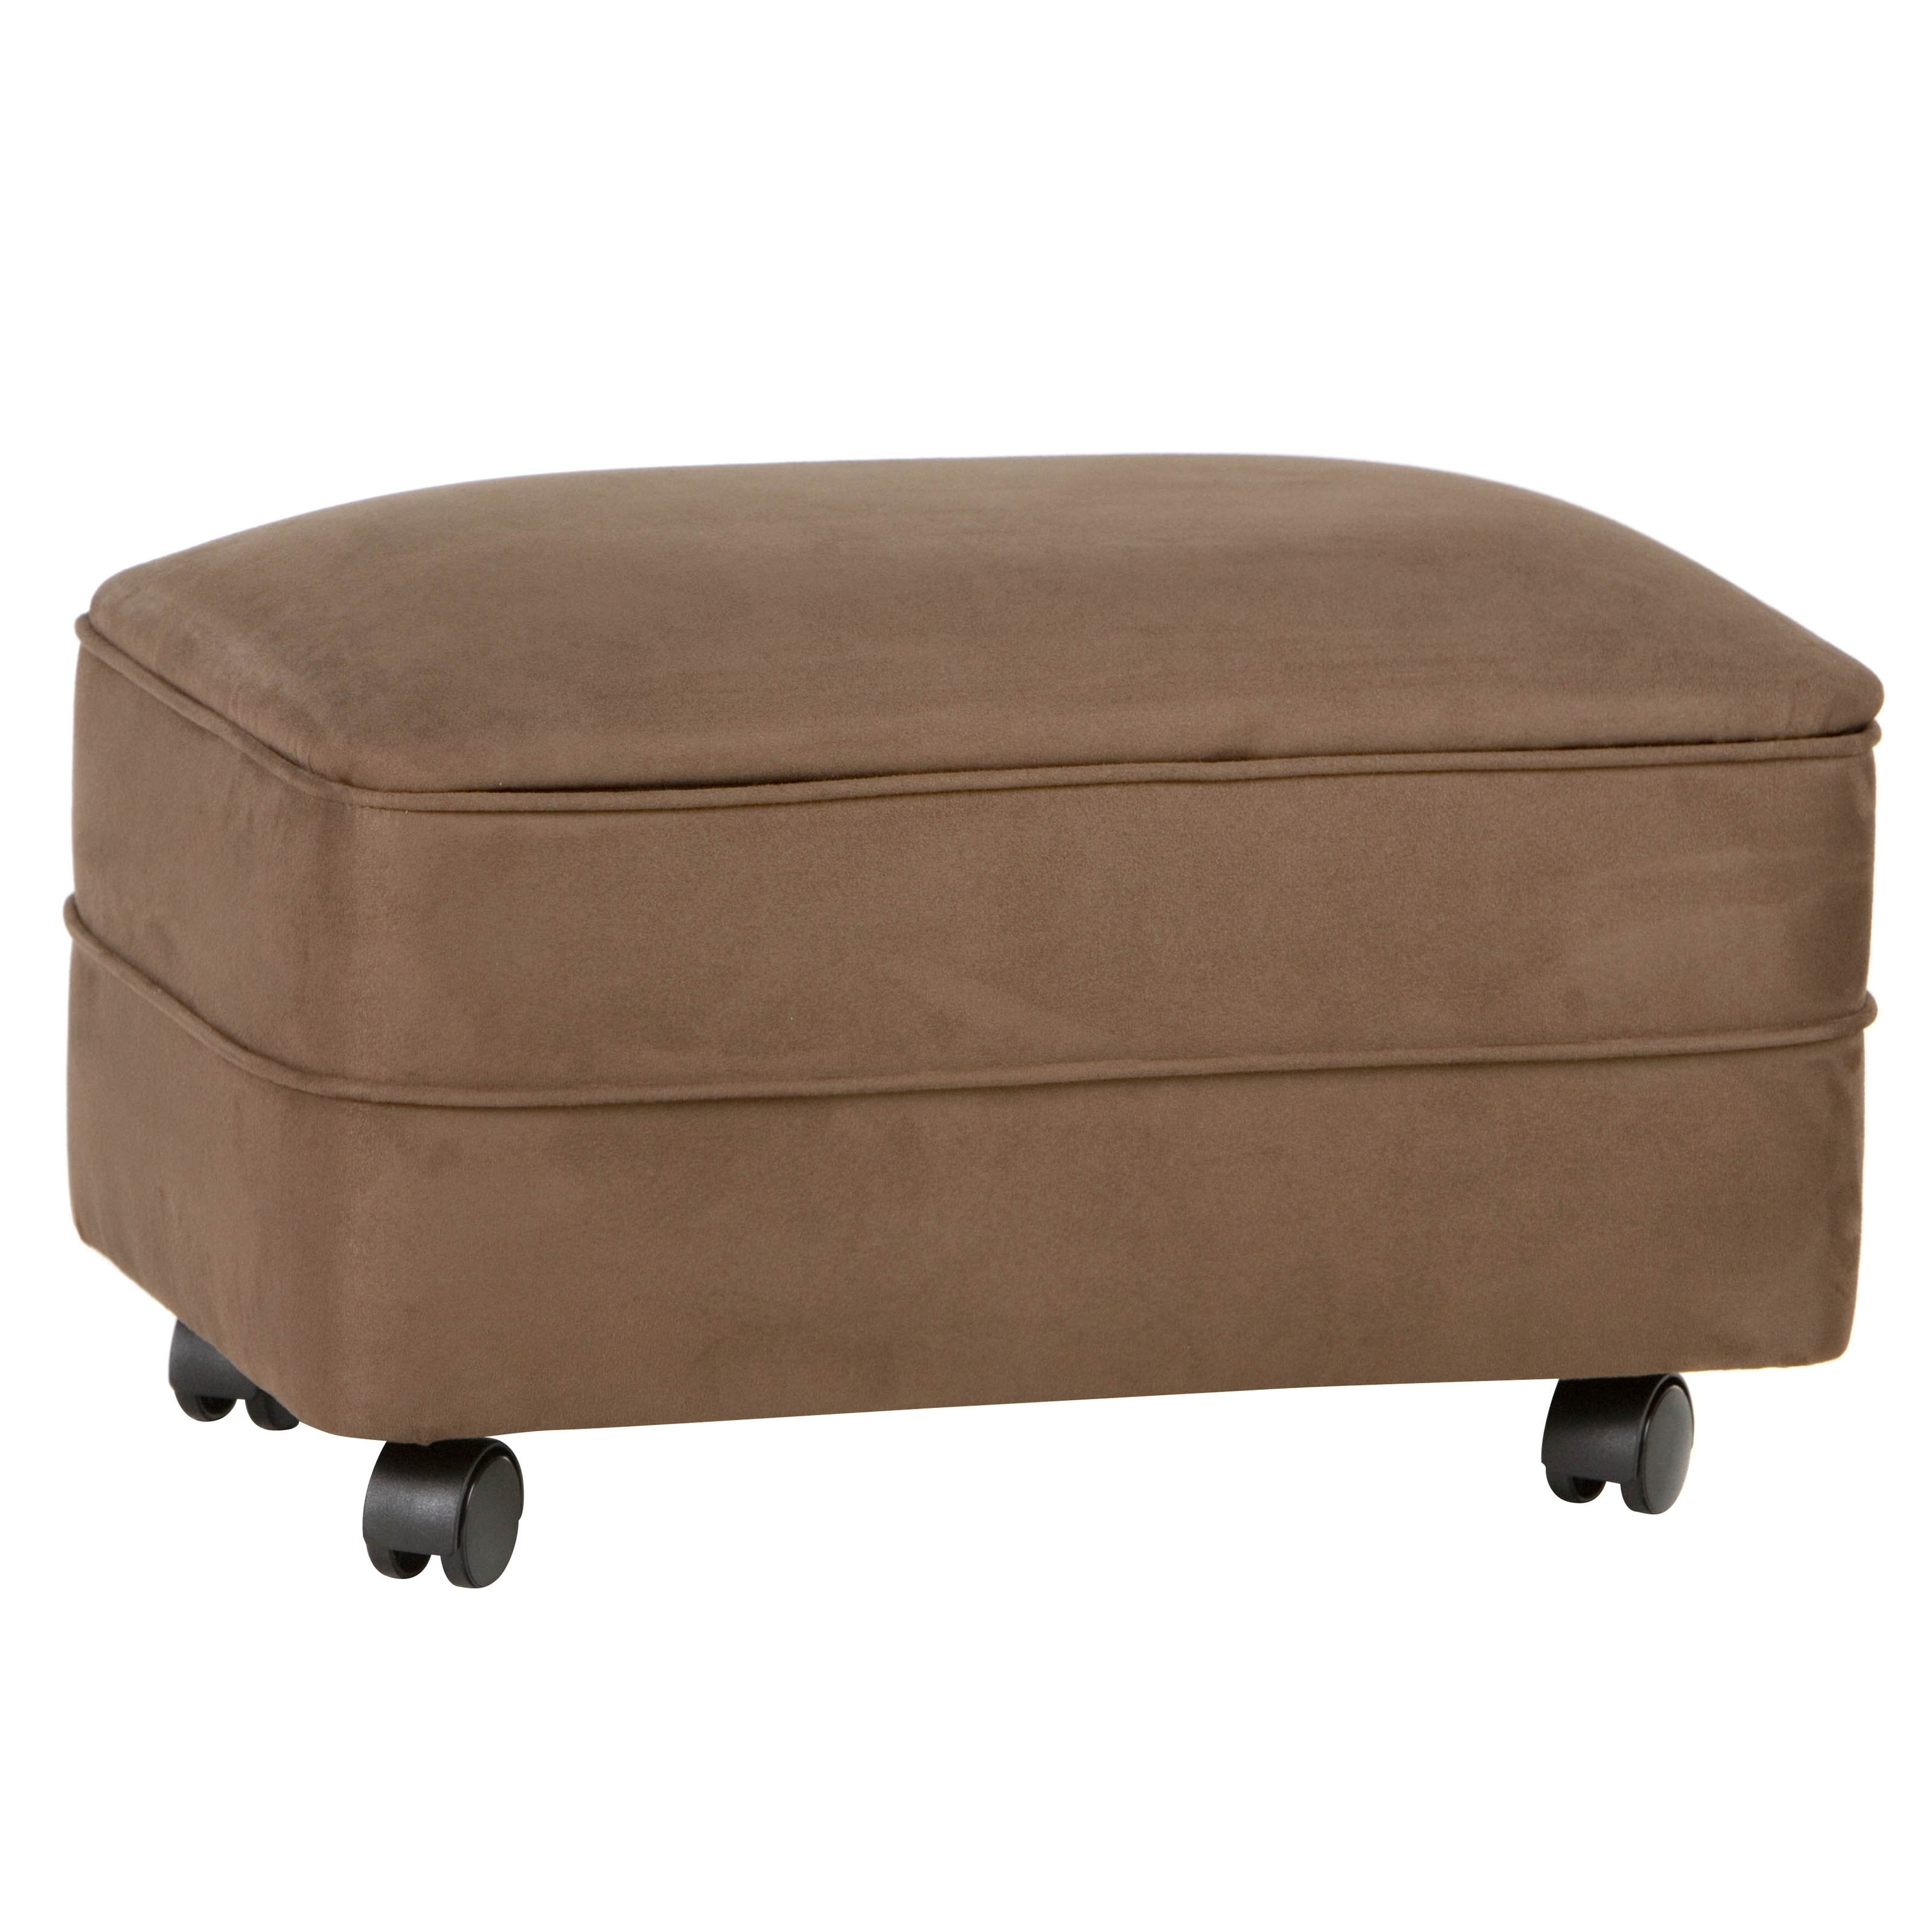 Microfiber Storage Ottoman, Footstools And Ottomans With Wheels with Ottomans With Wheels (Image 9 of 15)